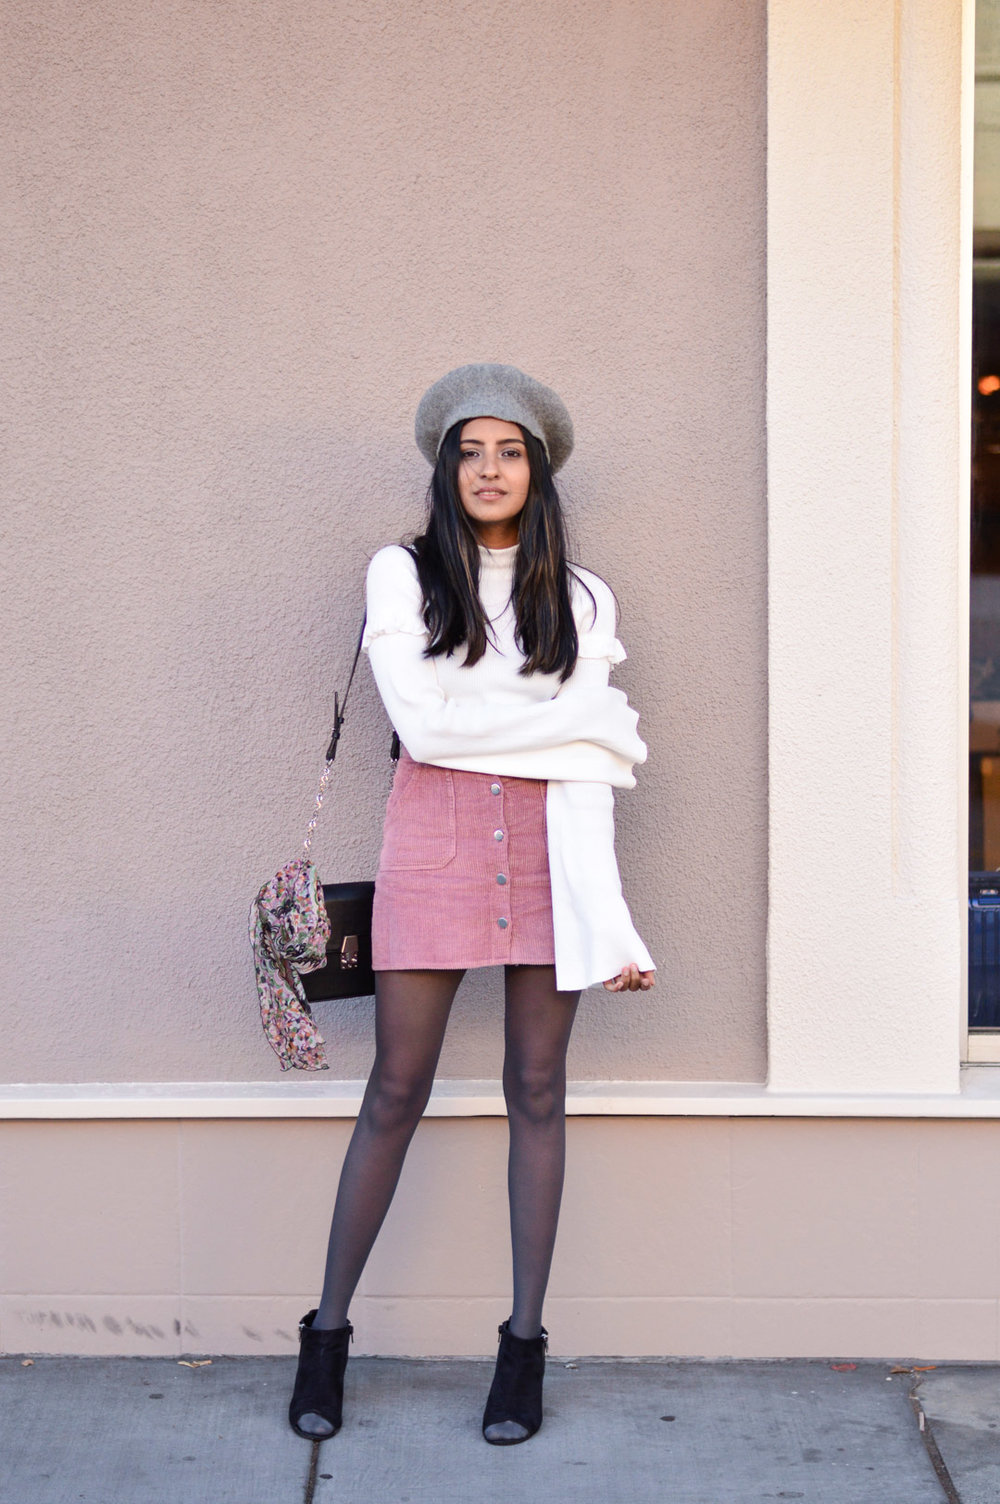 corduroy-skirt-pink-beret-fall-outfit-blogger-fashion 5